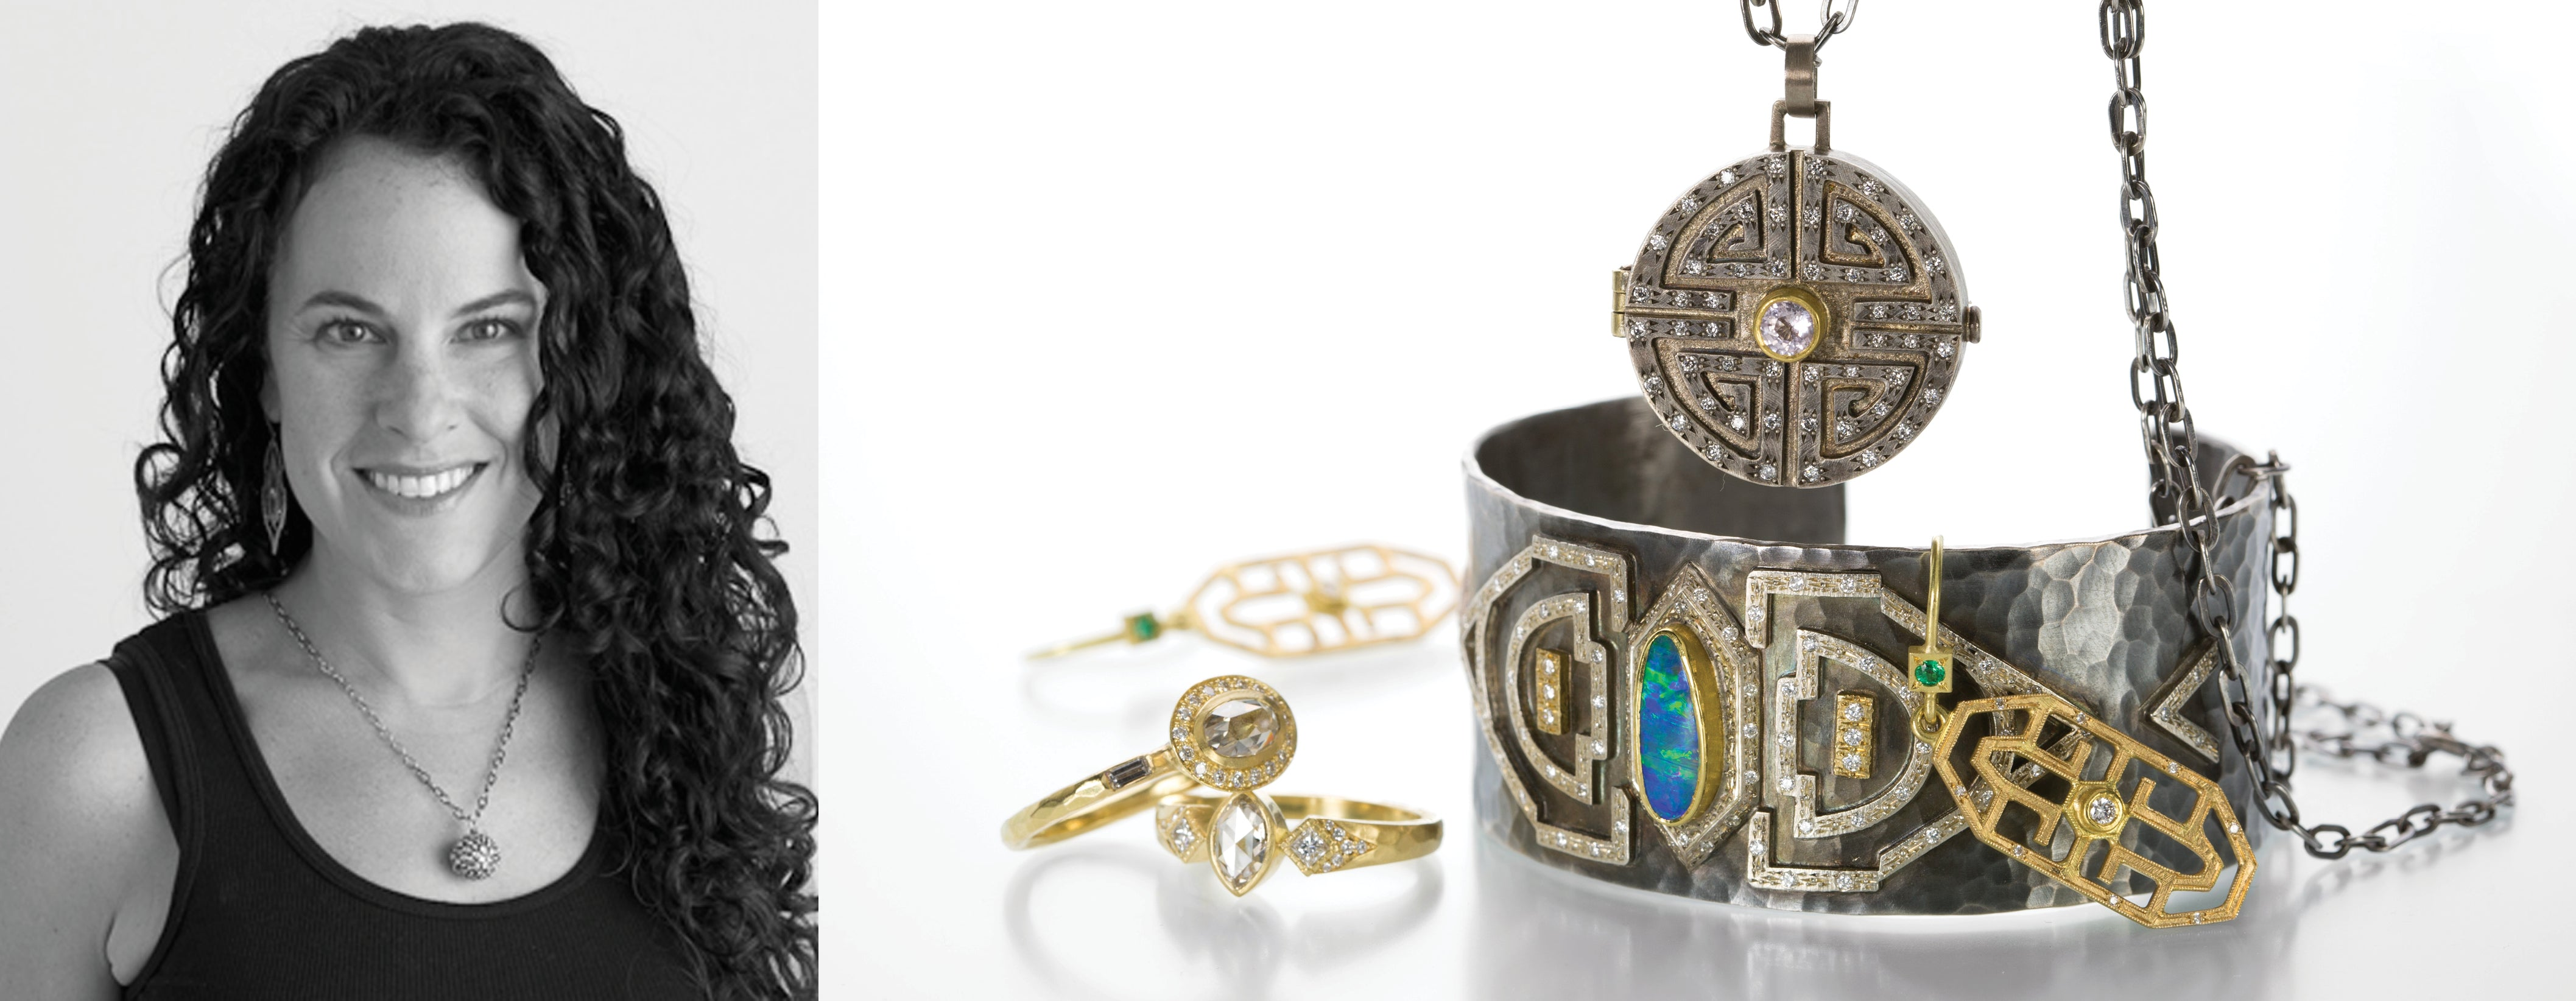 Jewelry designer Annie Fensterstock with a photo of her jewelry collection: an oxidized sterling silver cuff with opal and diamonds, an oxidized sterling silver round diamond locket, and two 18k yellow gold diamond rings